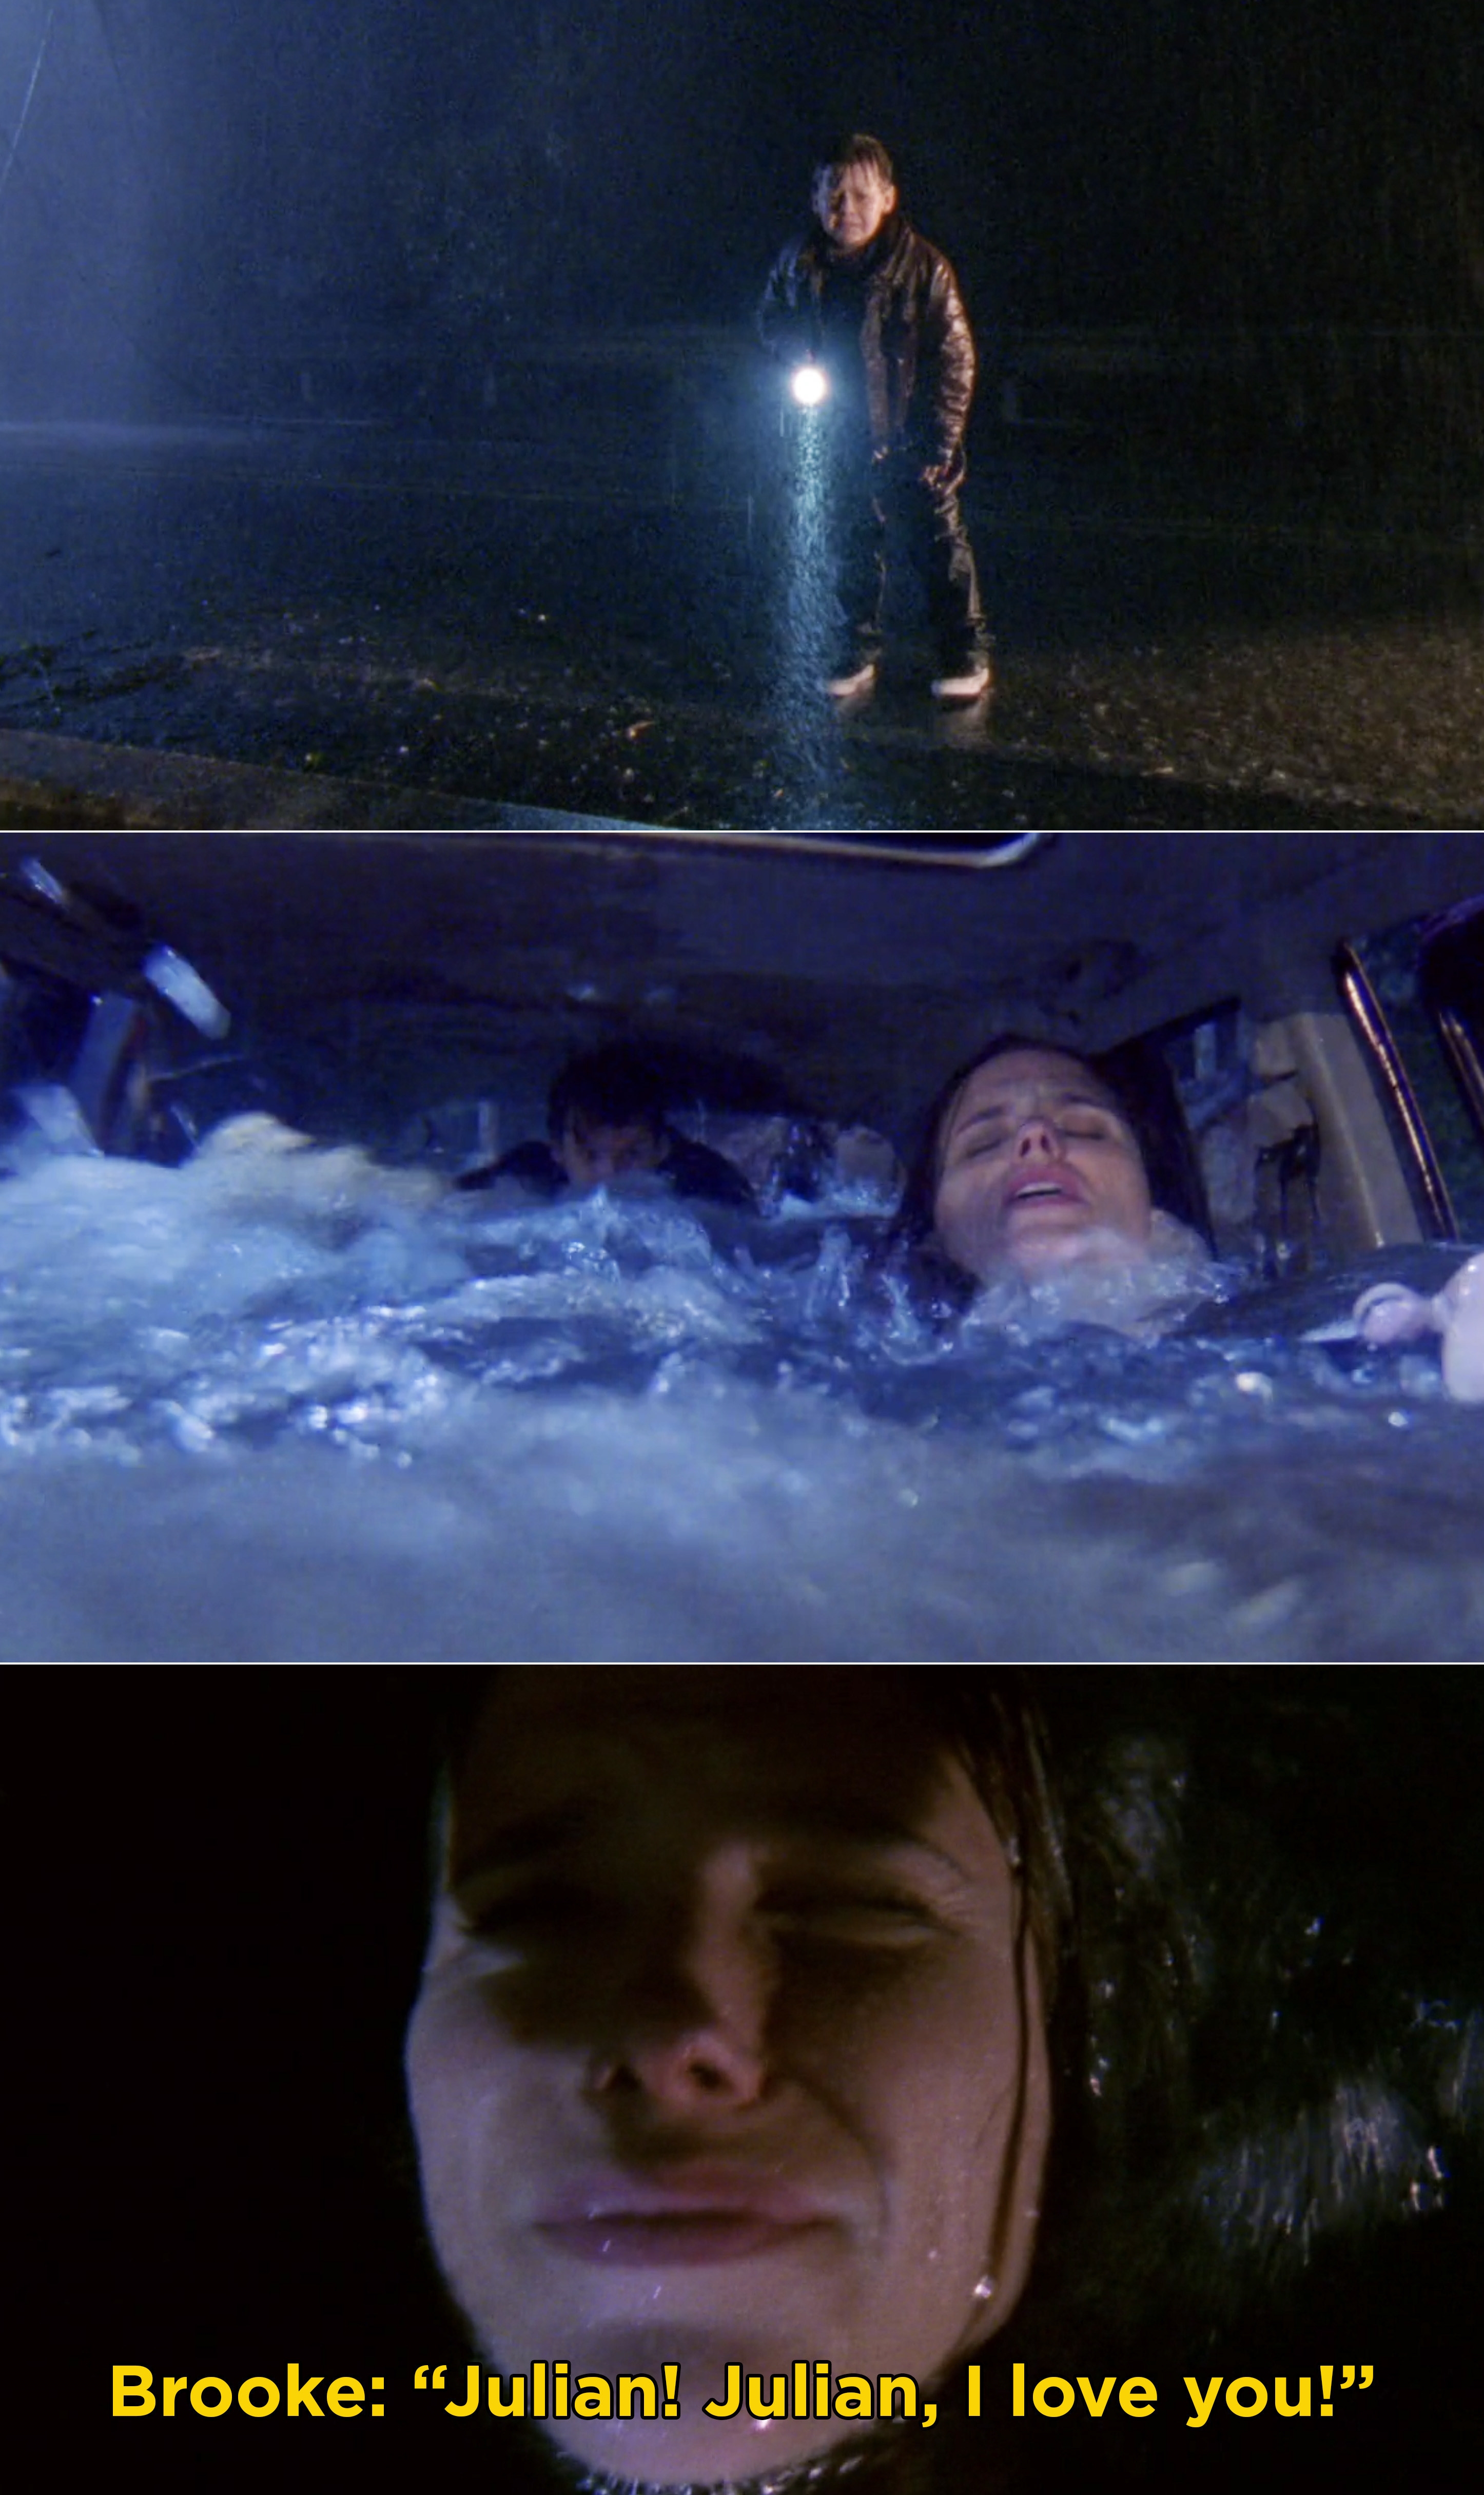 """Jamie watching from the bridge, Brooke's car filling up with water, and Brooke screaming, """"Julian! Julian, I love you!"""""""